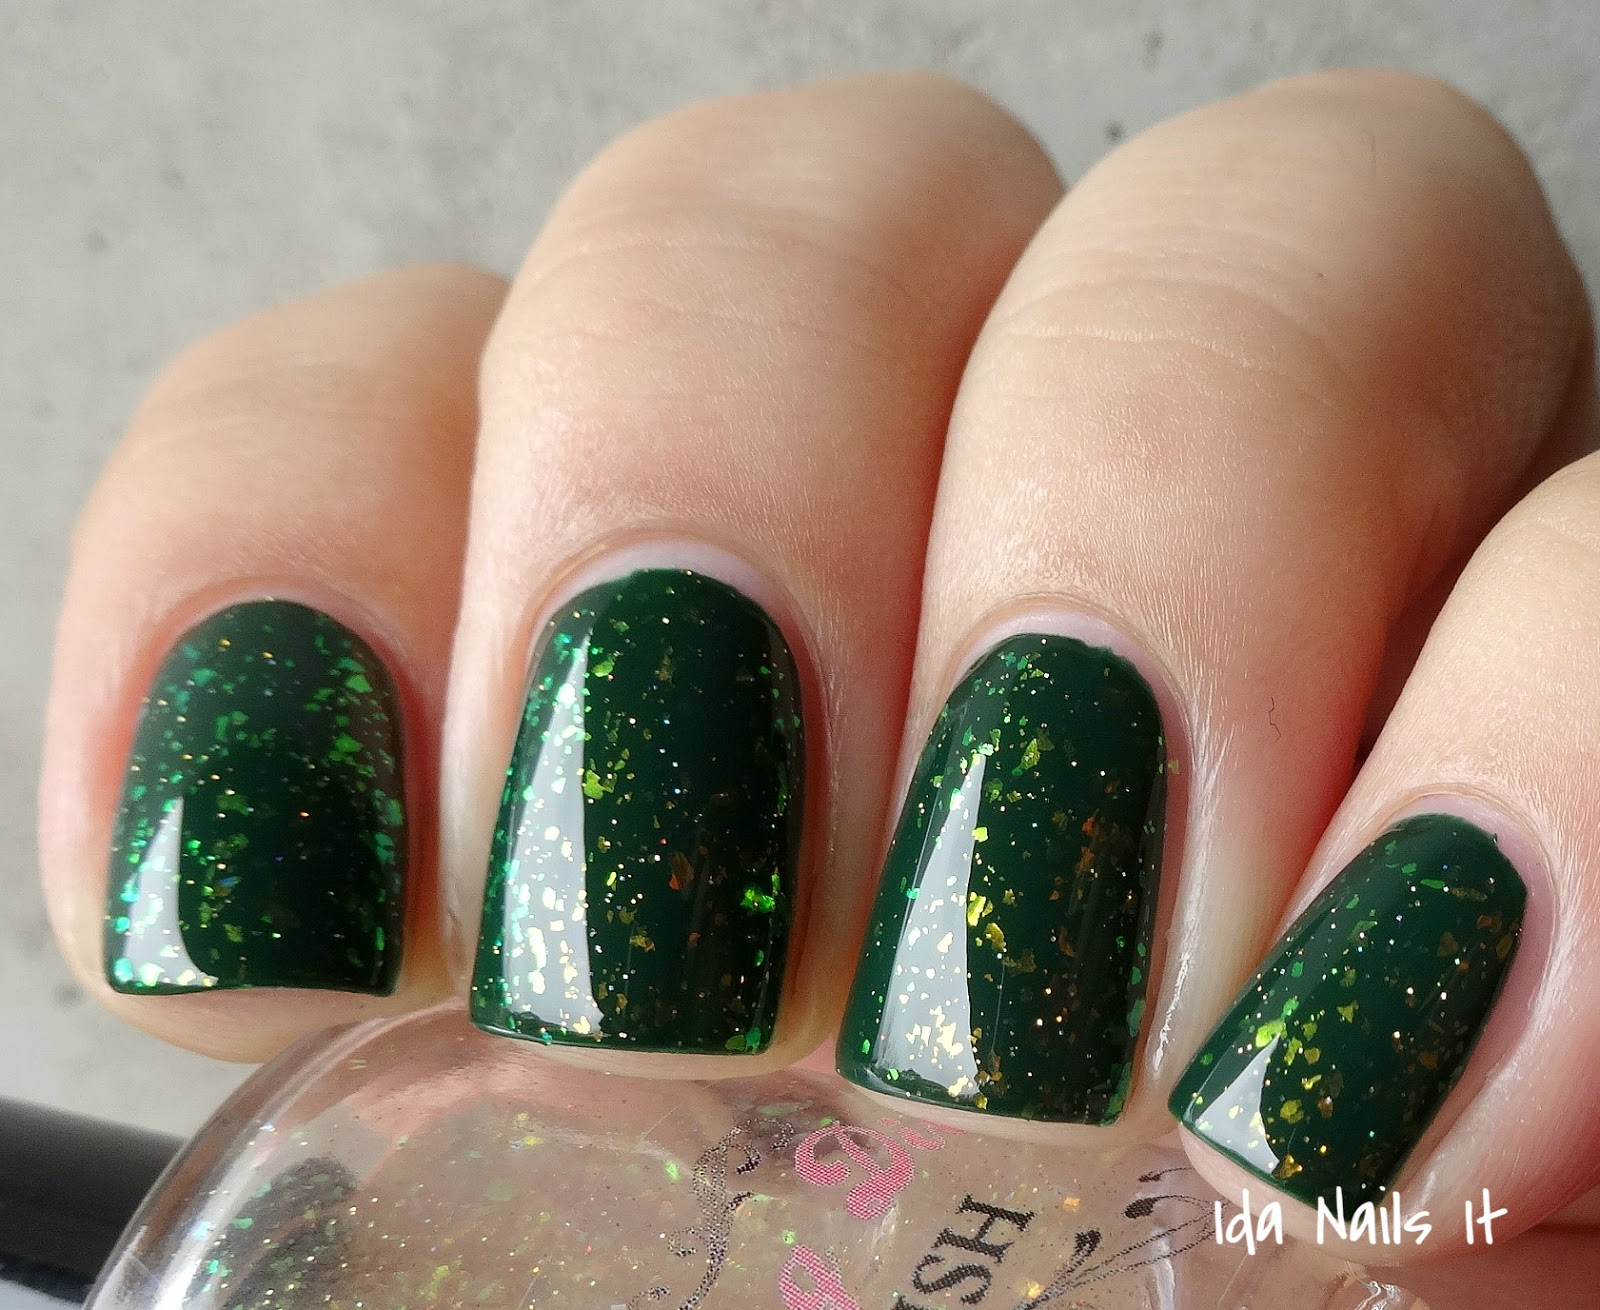 Nails Art: Ida Nails It: Darling Diva Polish Girlfriends Collection